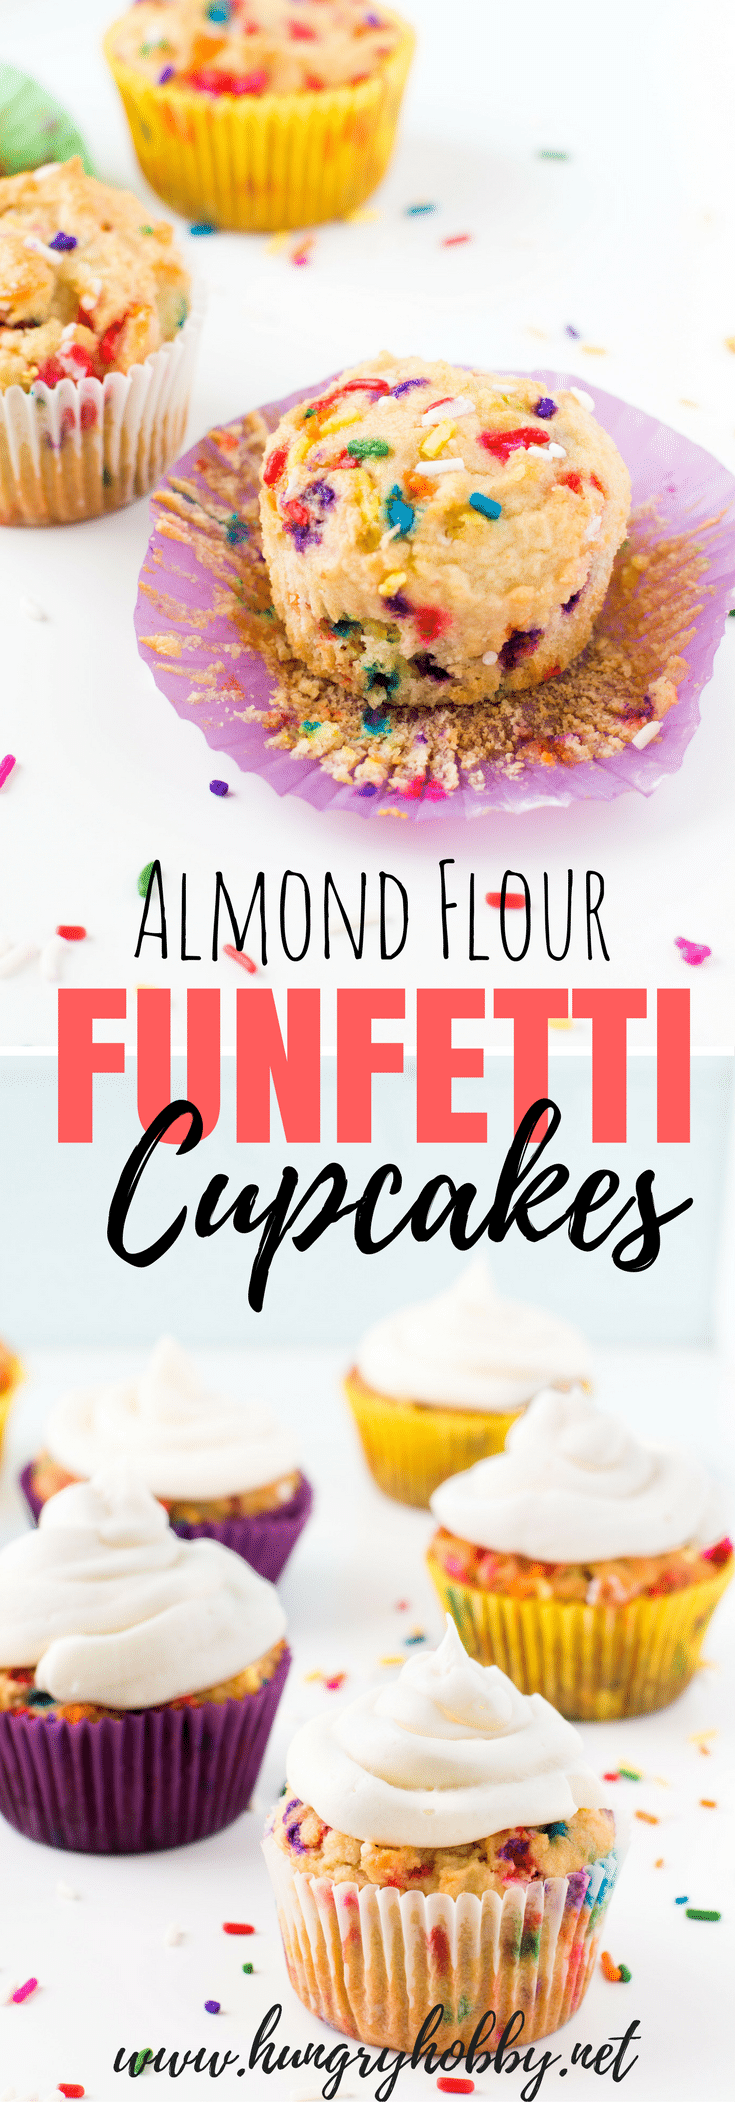 Almond flour funfetti cupcakes are a slightly healthier version of the best cupcake flavor ever, FUNFETTI plus a buttercream frosting to top it off!